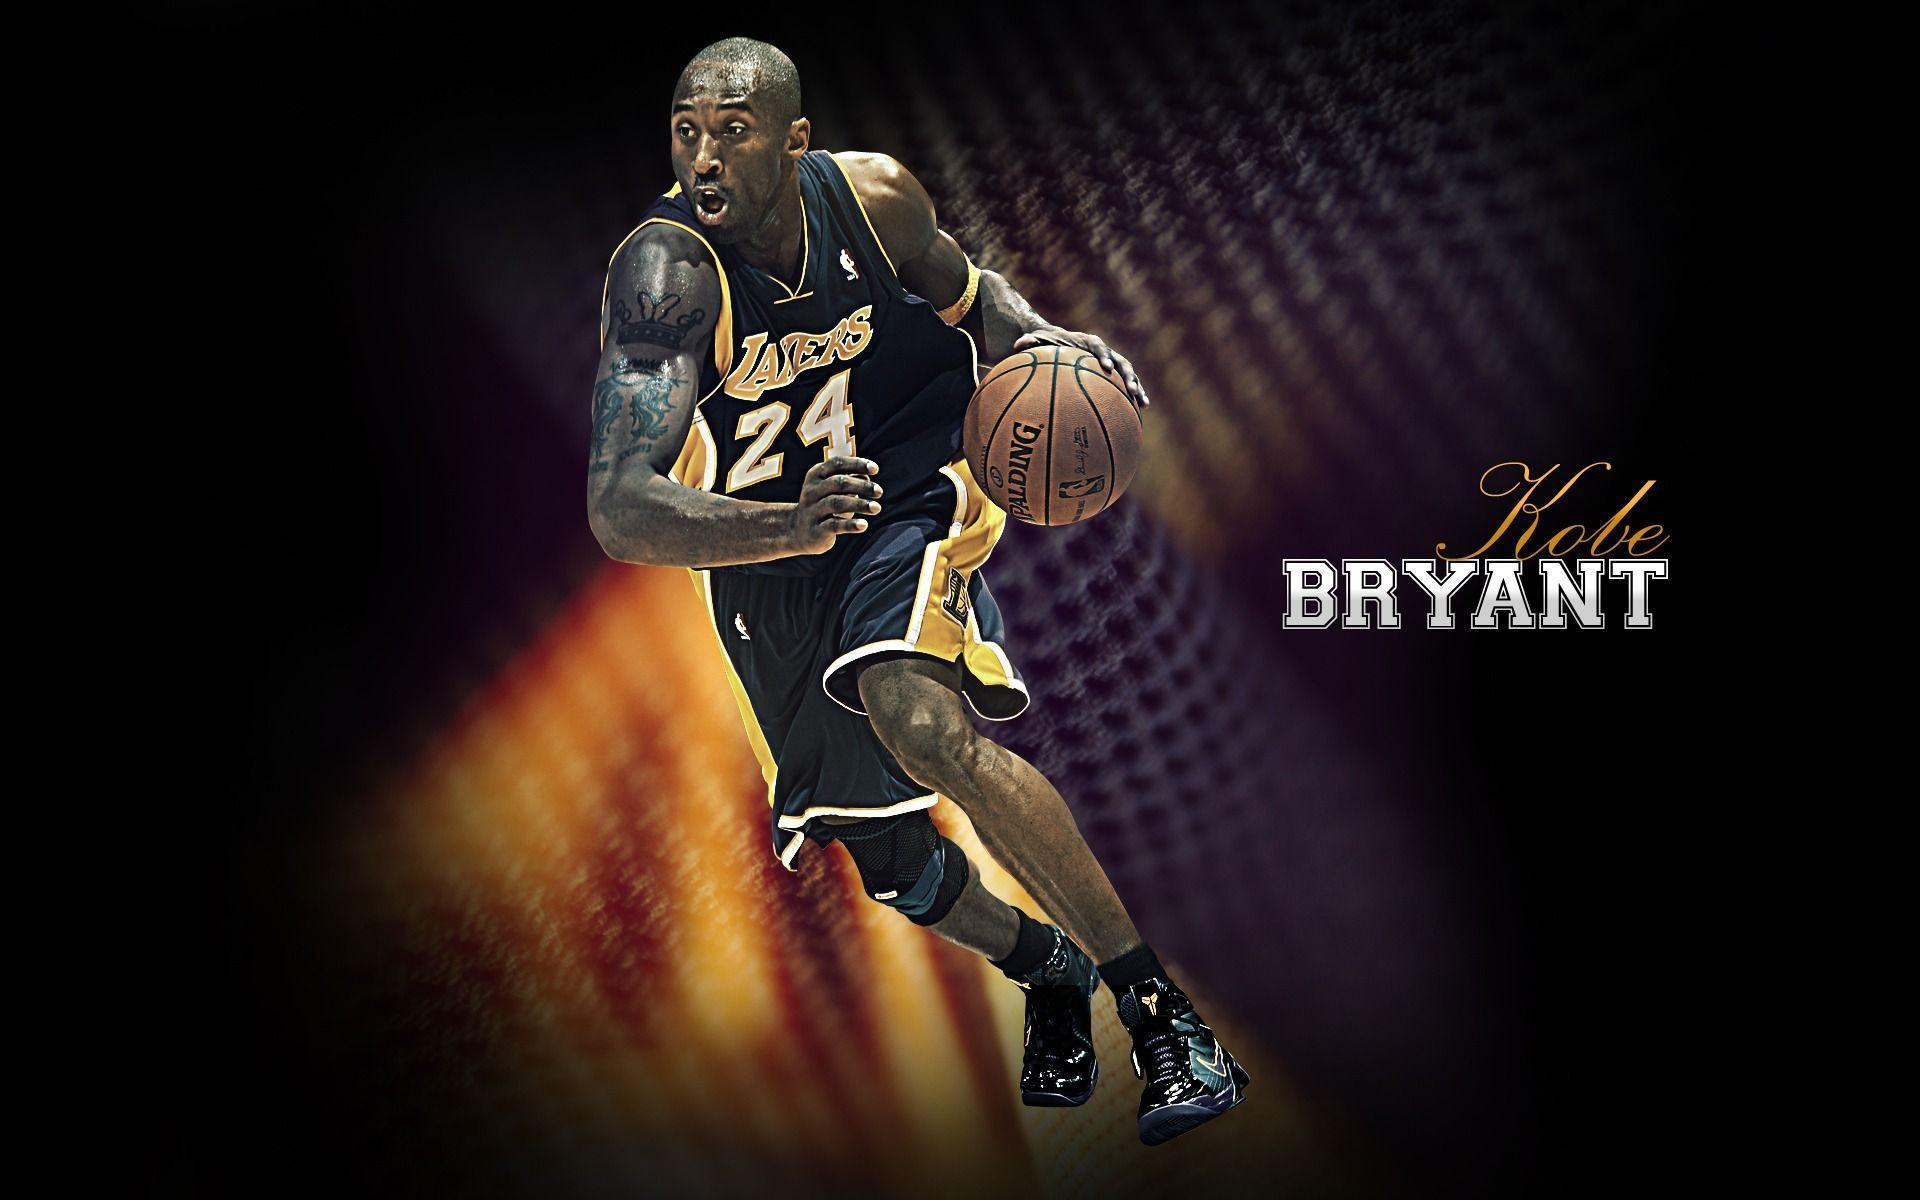 Nba players wallpapers for free download about (38) wallpapers.